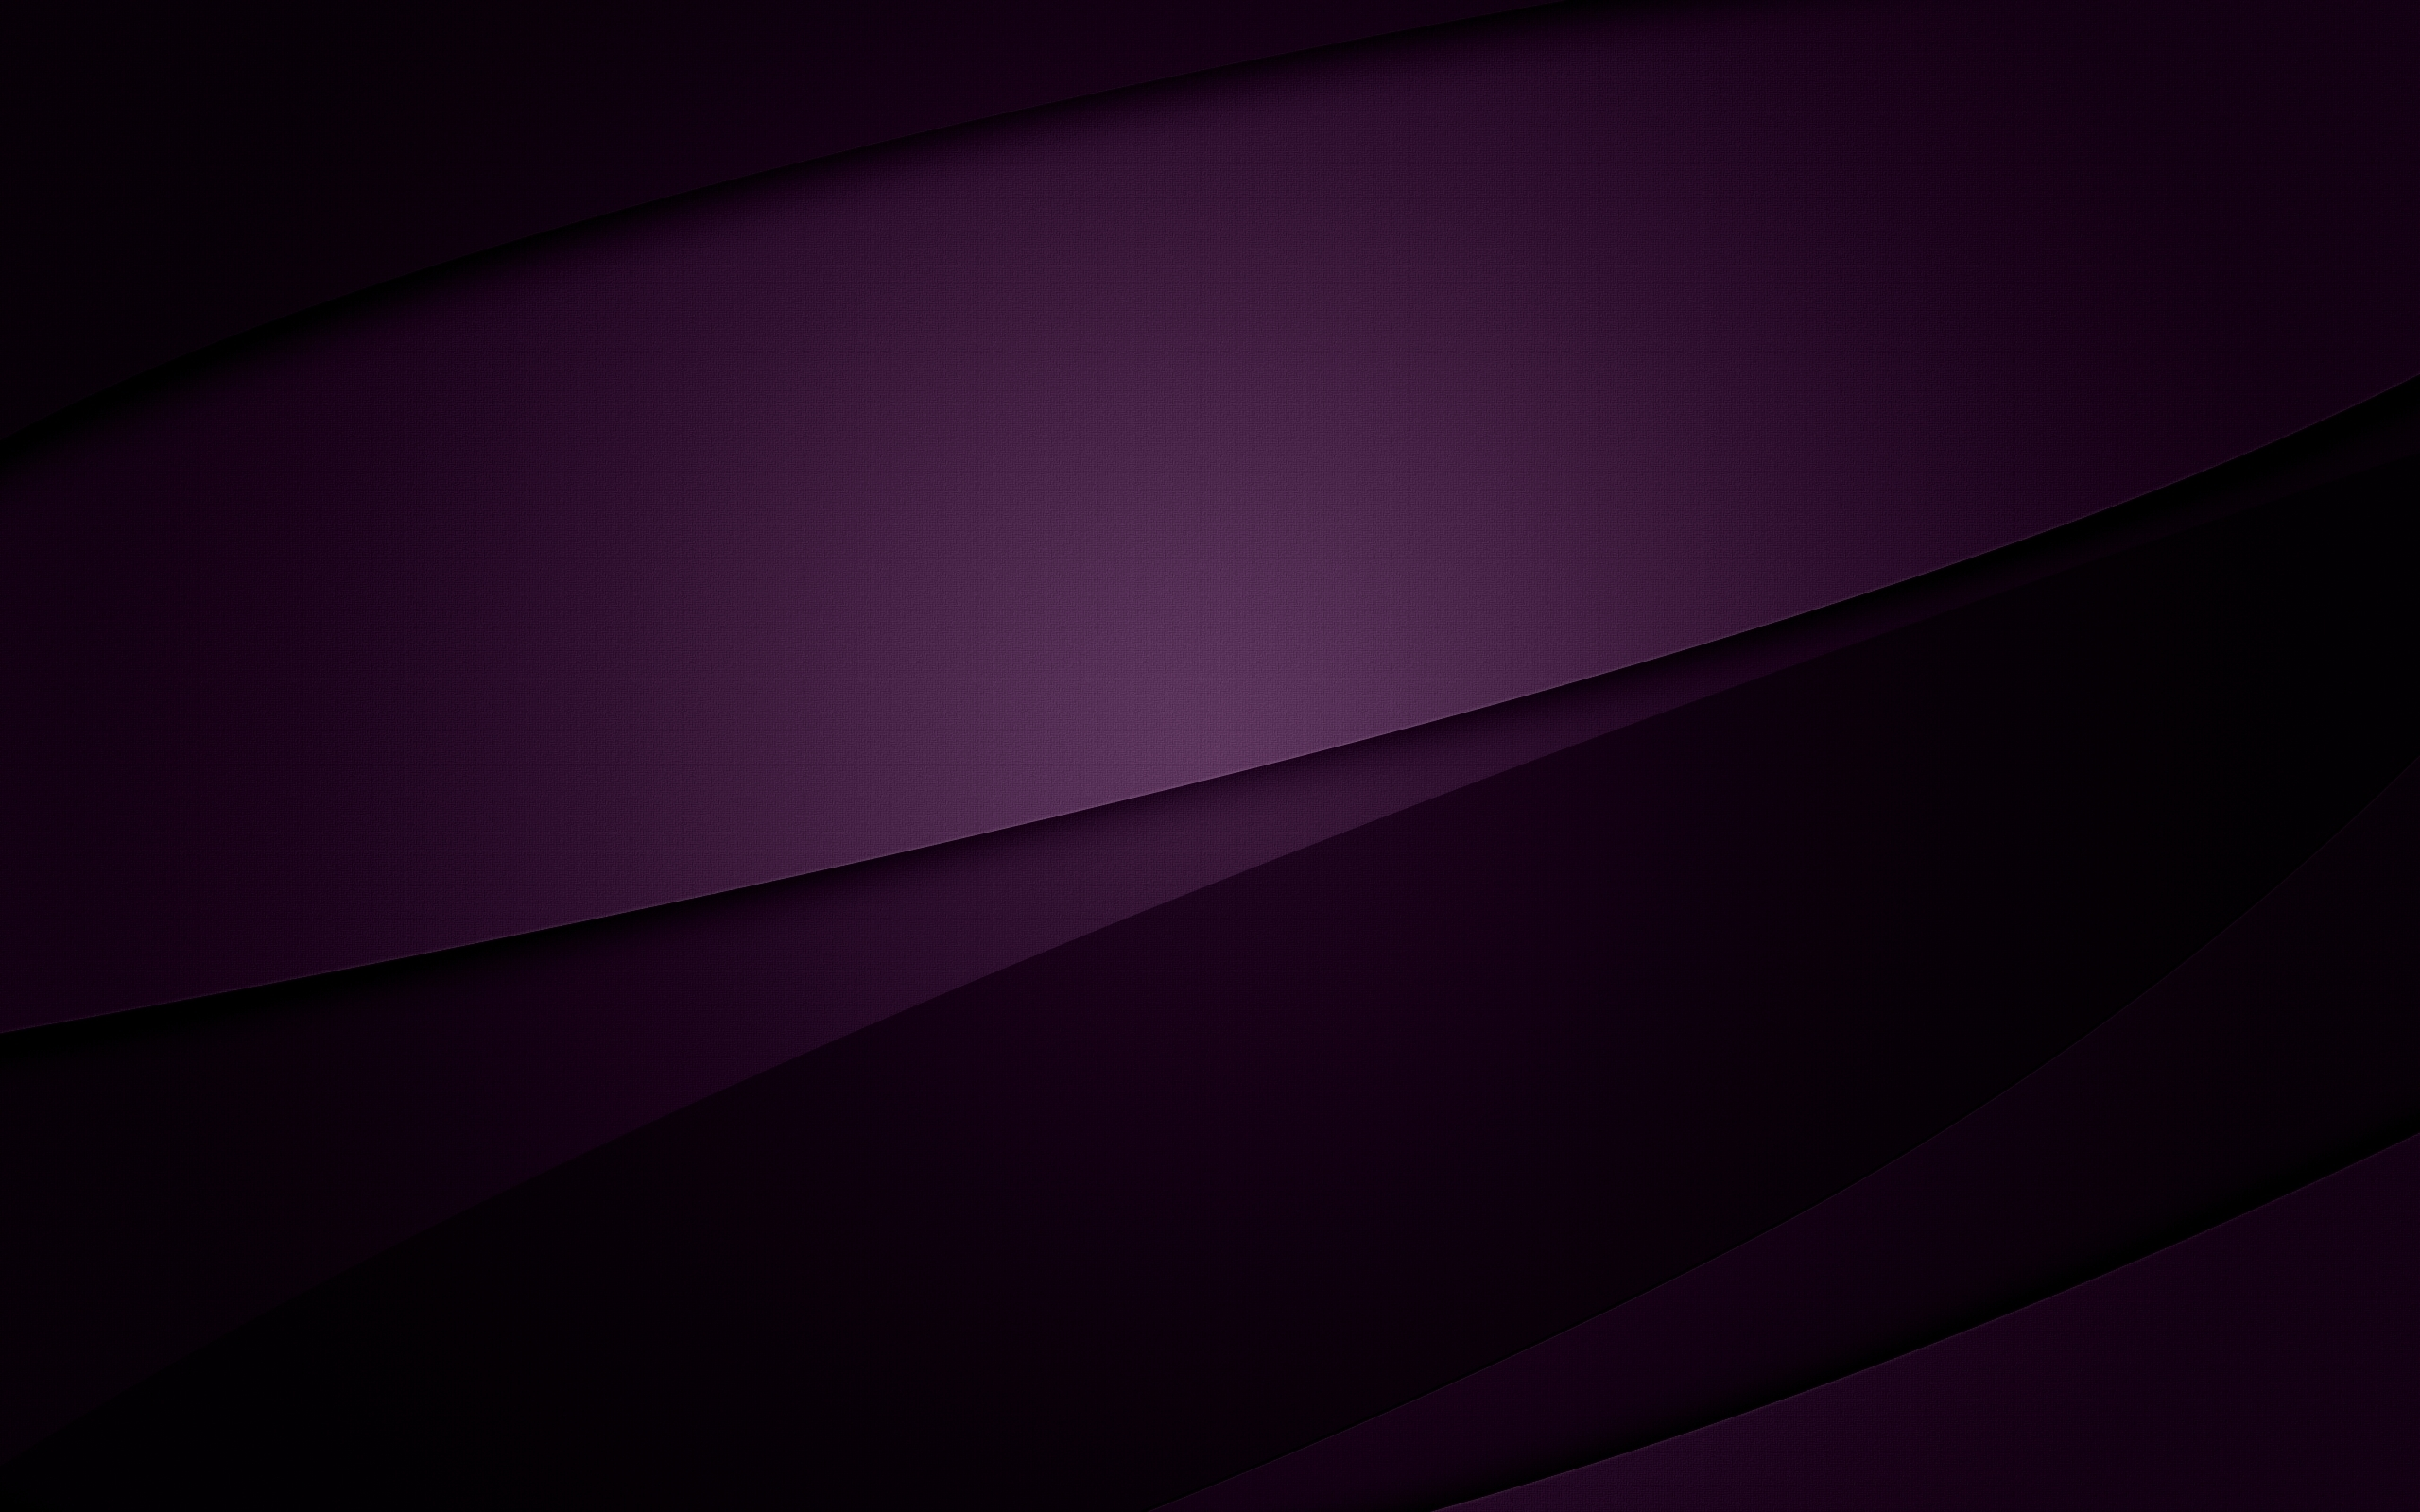 purple abstract hd